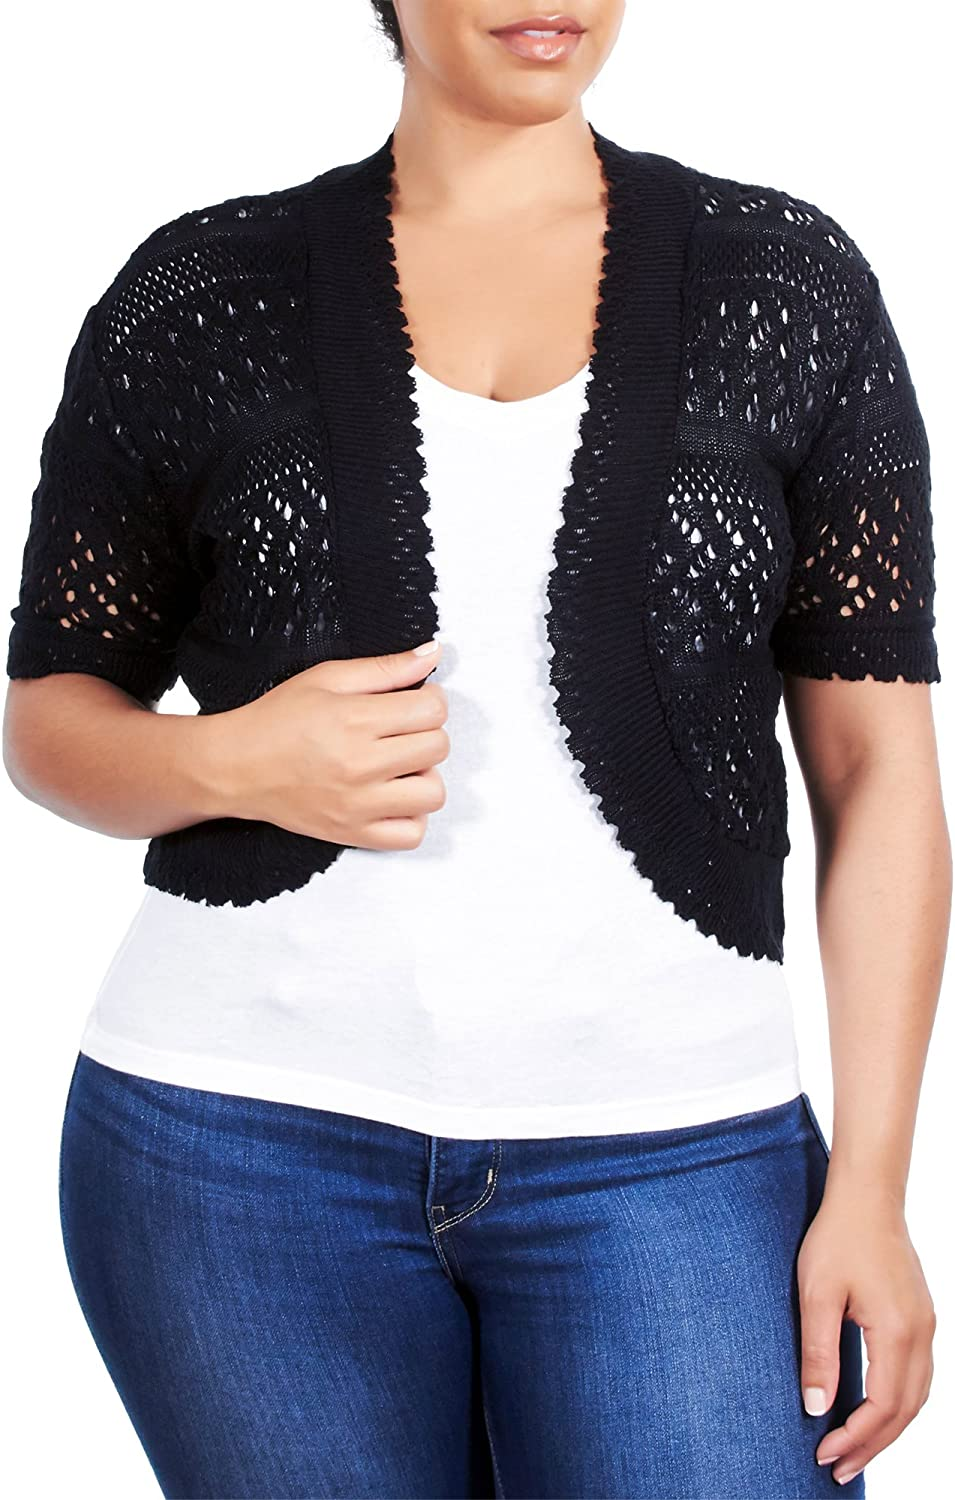 See More Colors and Sizes Knit Minded Womens Plus Size Womens Acrylic Pointelle Knit Bolero Jacket